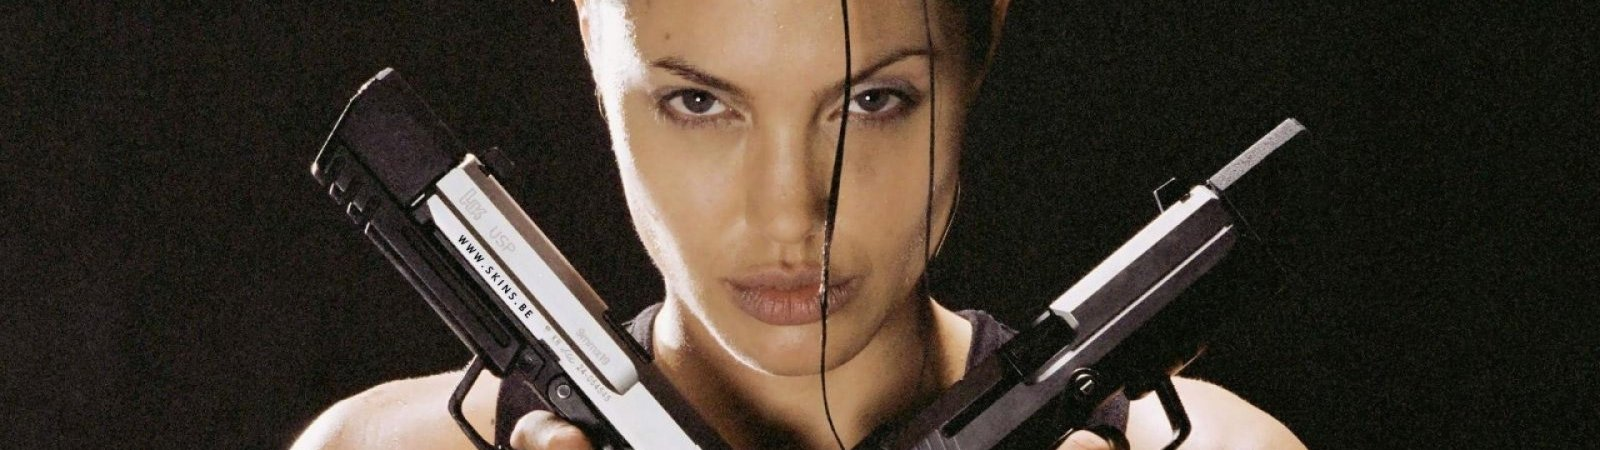 Photo du film : Lara croft : tomb raider